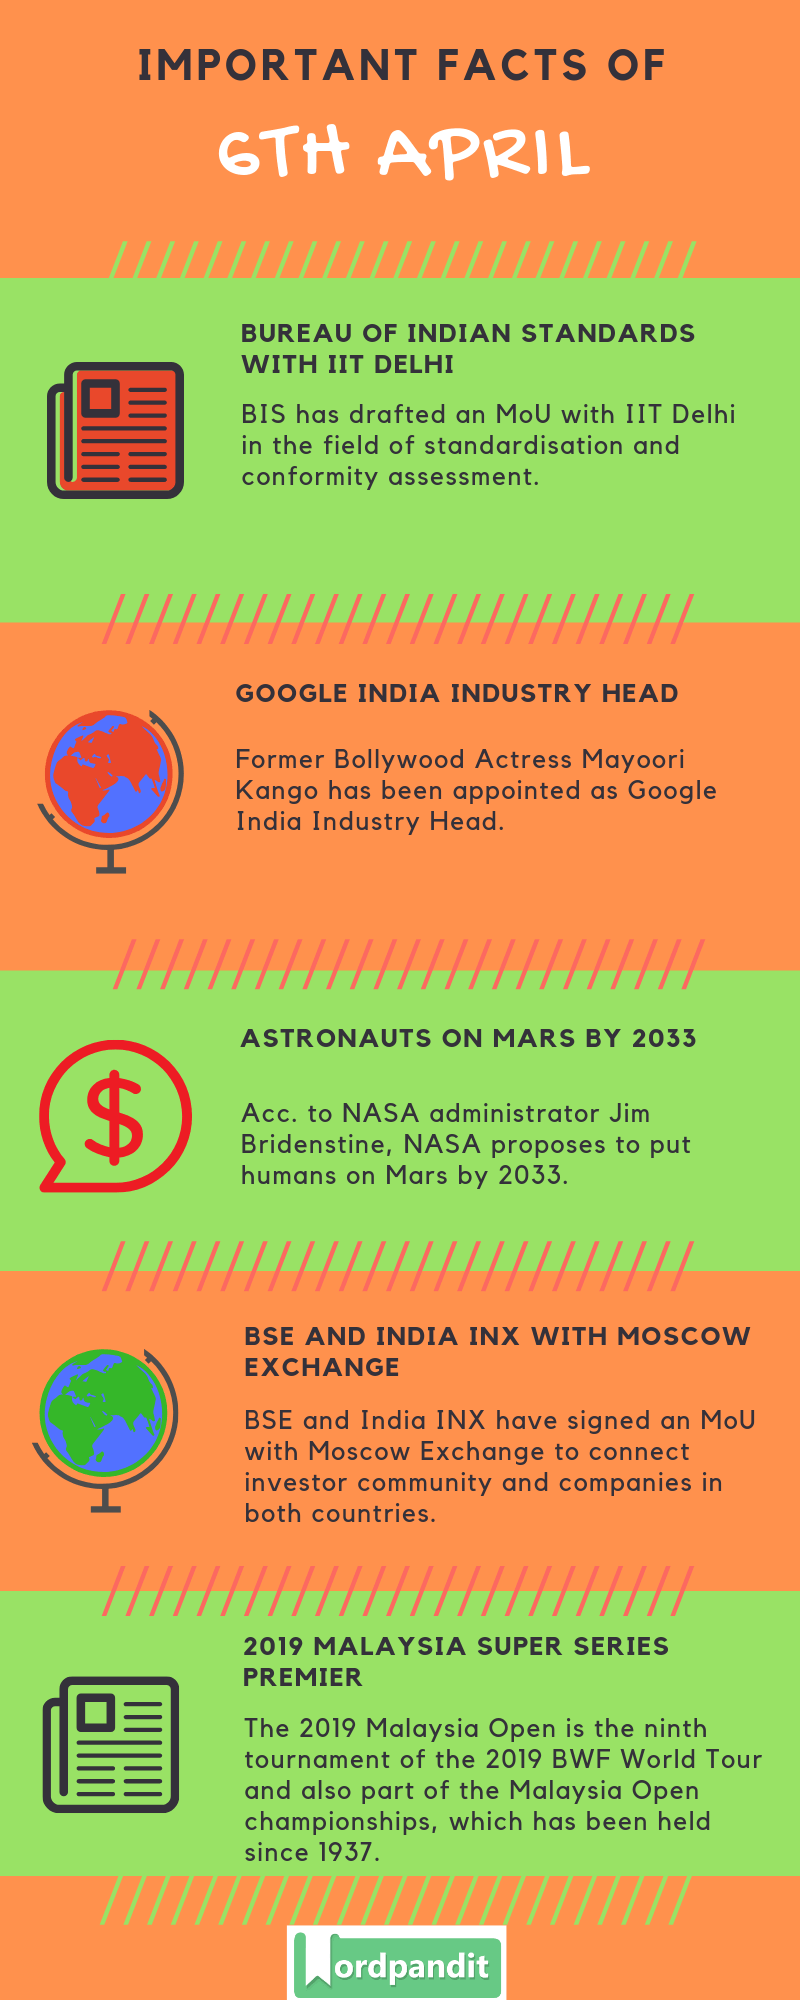 Daily Current Affairs 6 April 2019 Current Affairs Quiz 6 April 2019 Current Affairs Infographic